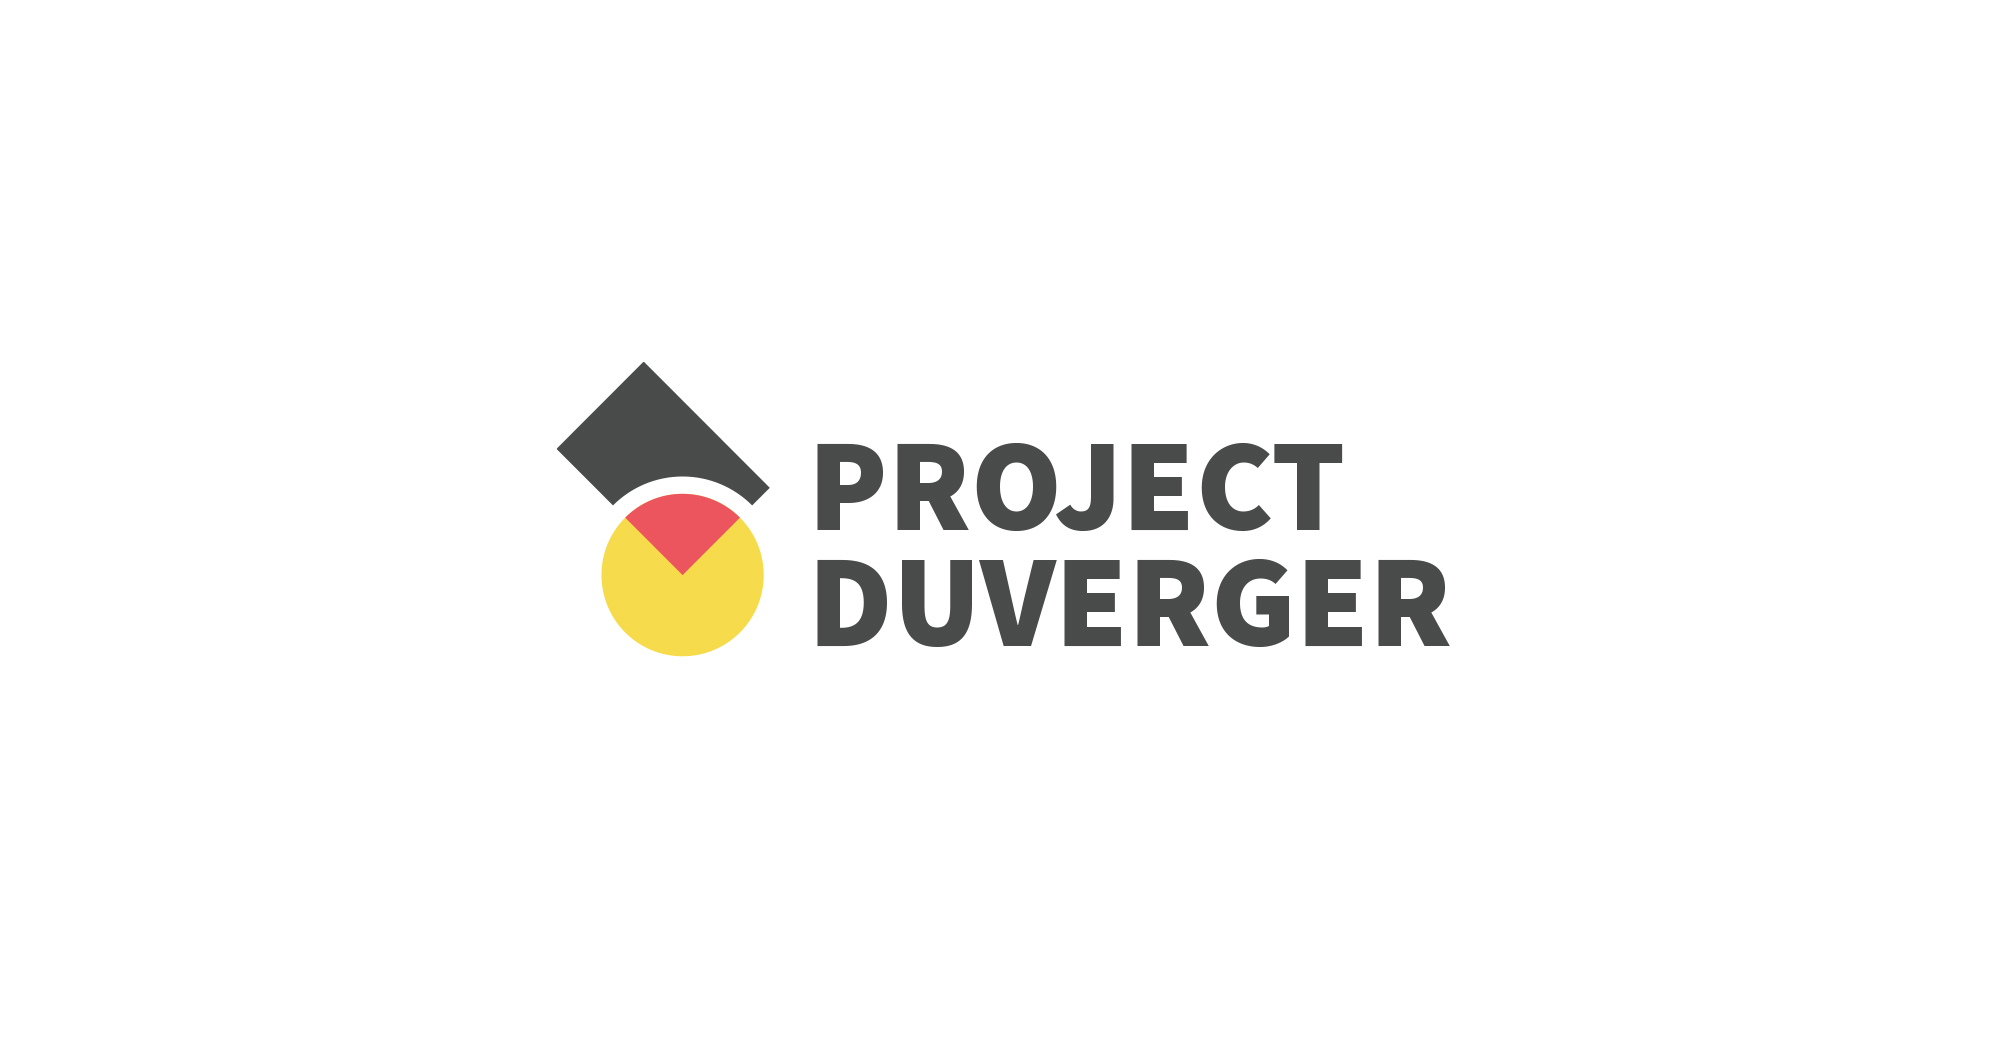 Project Duverger Logo Design